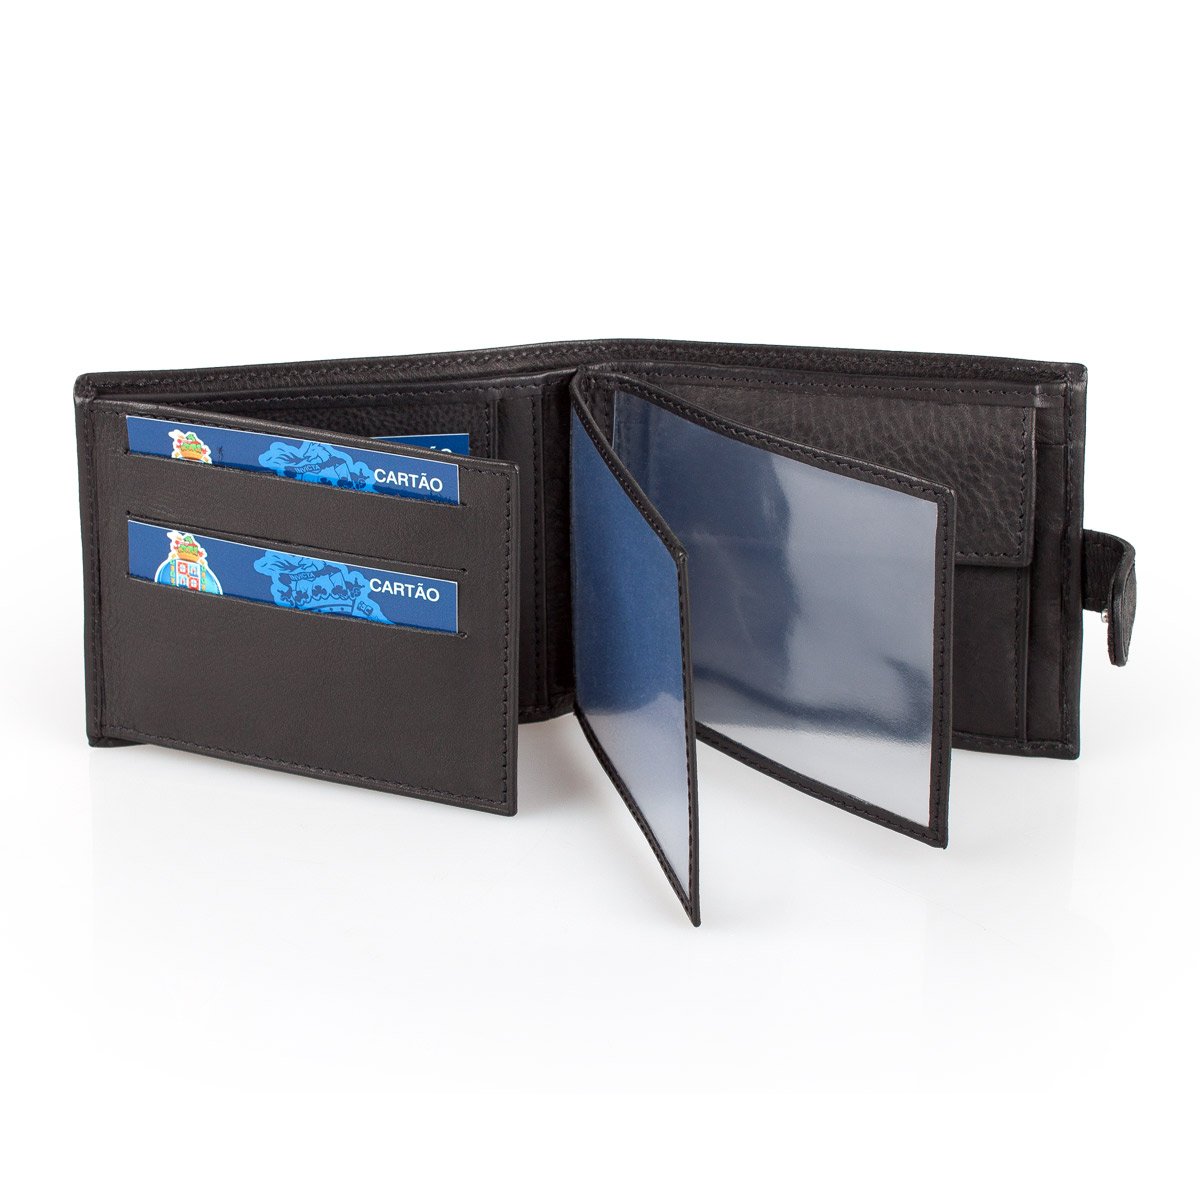 Leather Wallet Tab F.C. PORTO Black – image 3